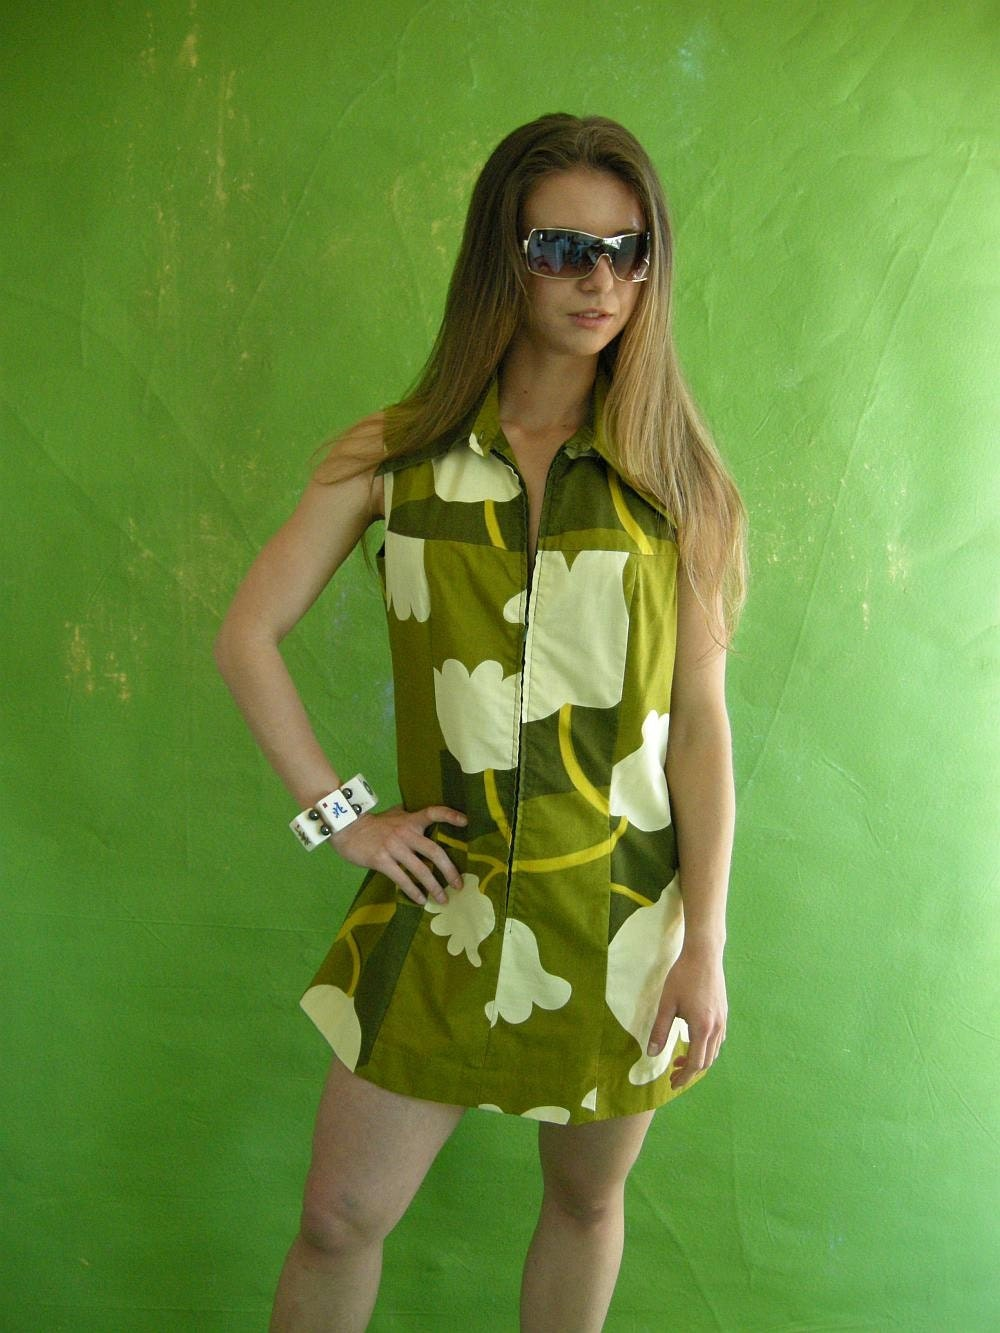 GREEN Floral Vintage 70s Mini Scooter Dress M by empressjade